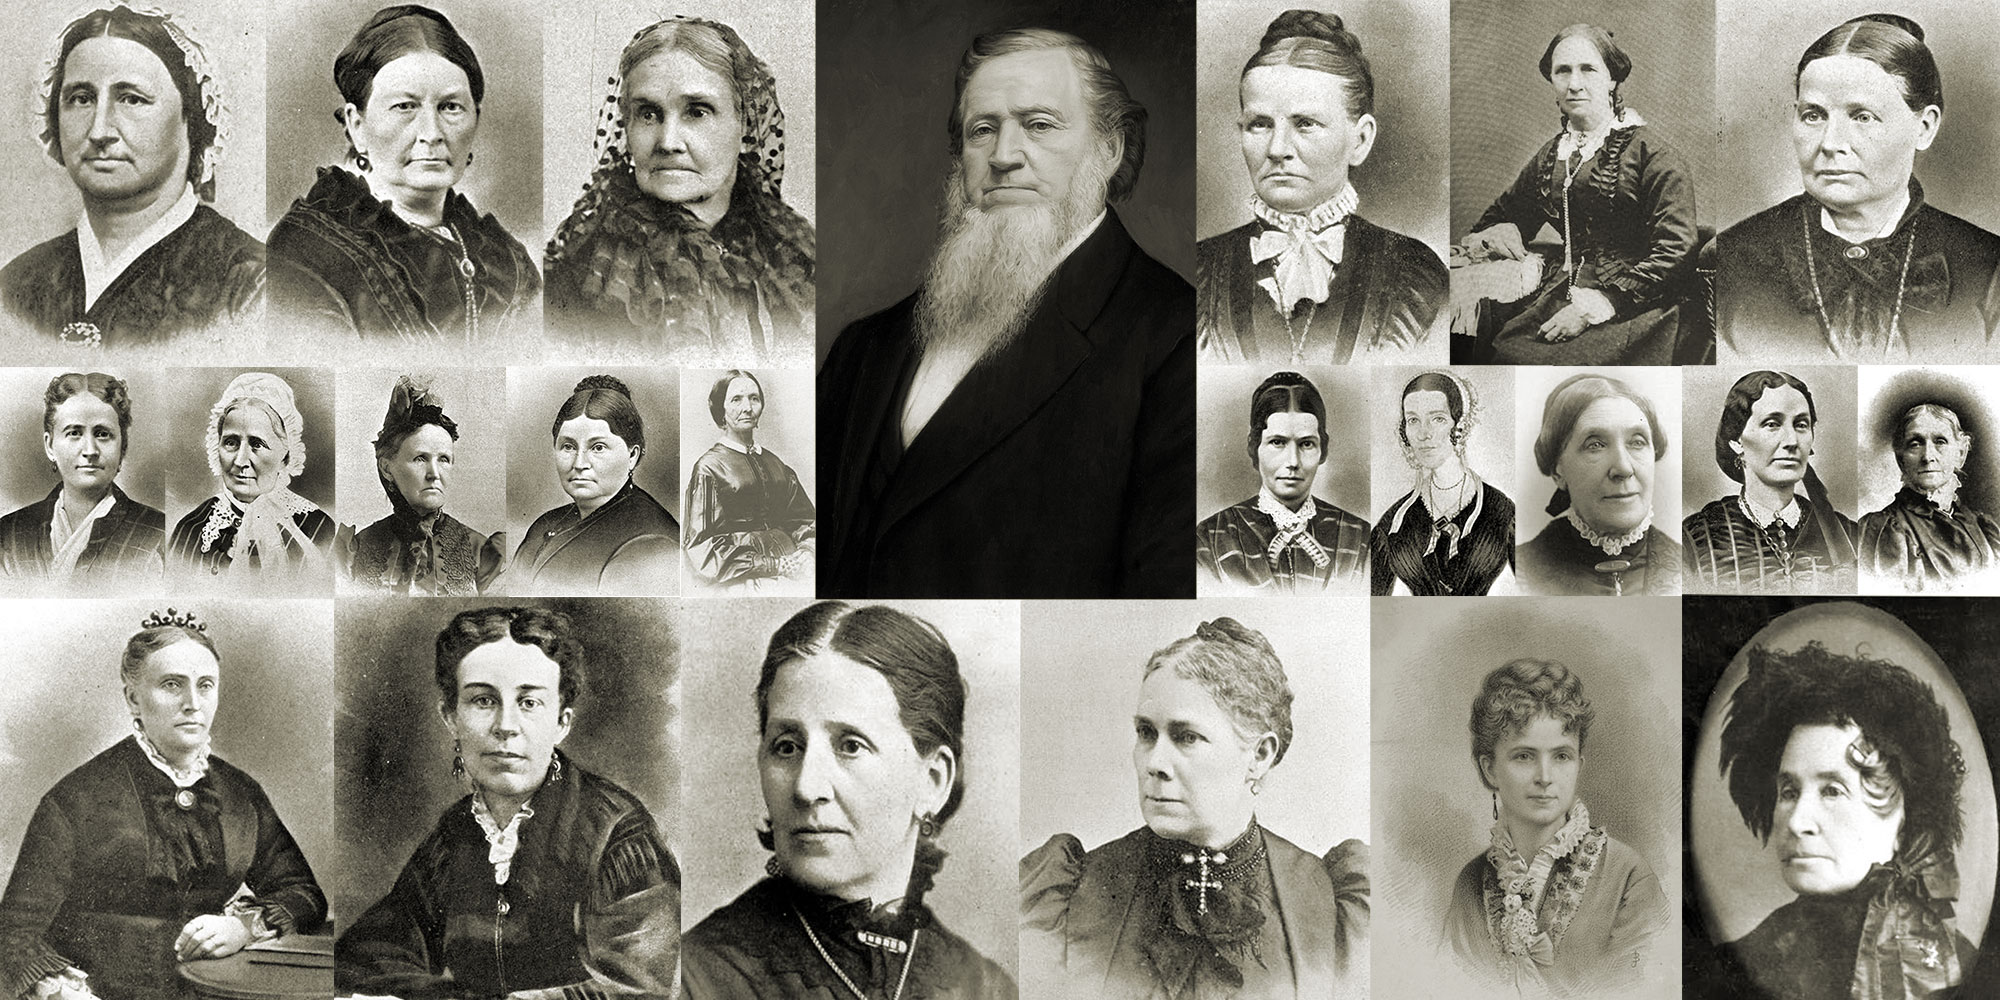 A collage of the portraits of Brigham Young and 22 women.